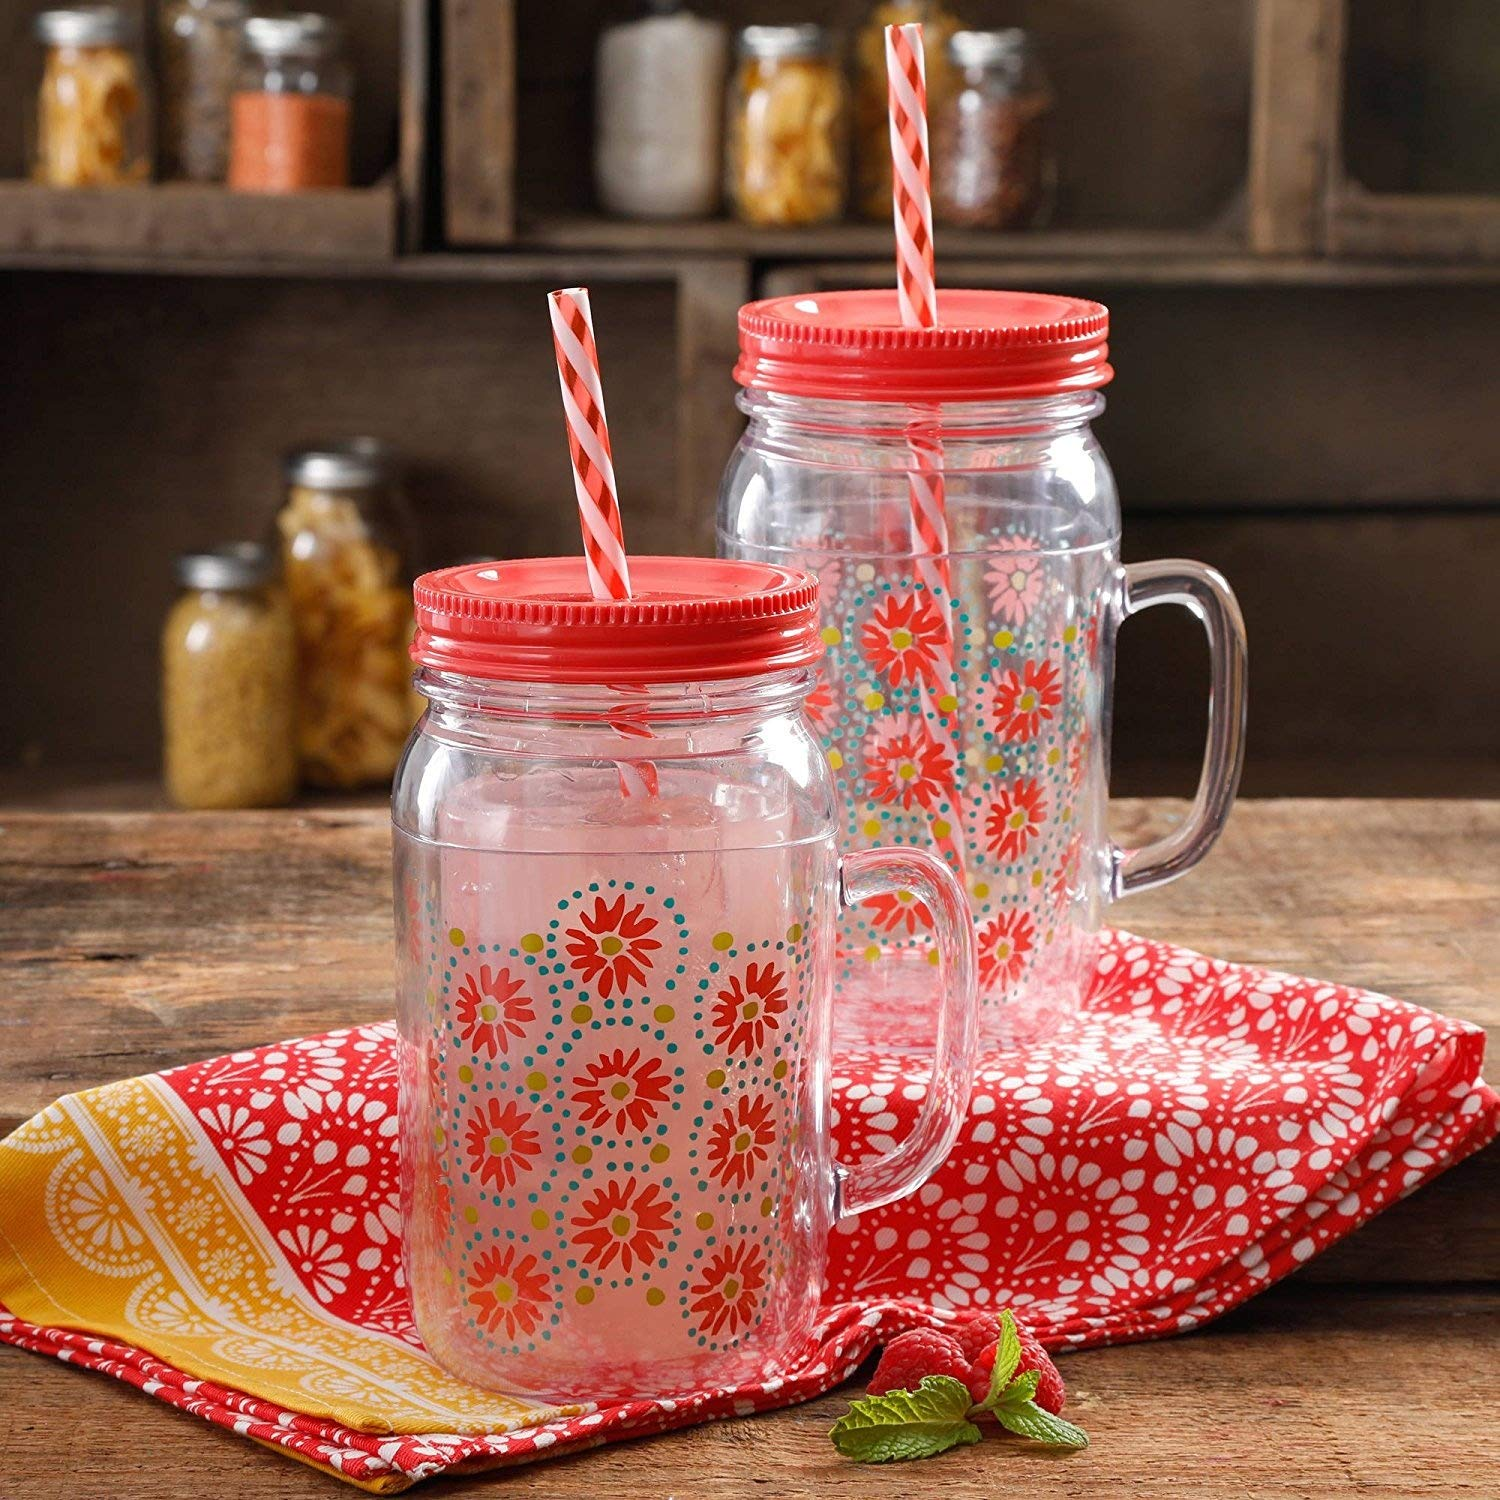 The Pioneer Woman Simple Homemade Goodness 32-Ounce Daisie Watermelon Double-Wall Mason Jar with Lid and Handle, Set of 2